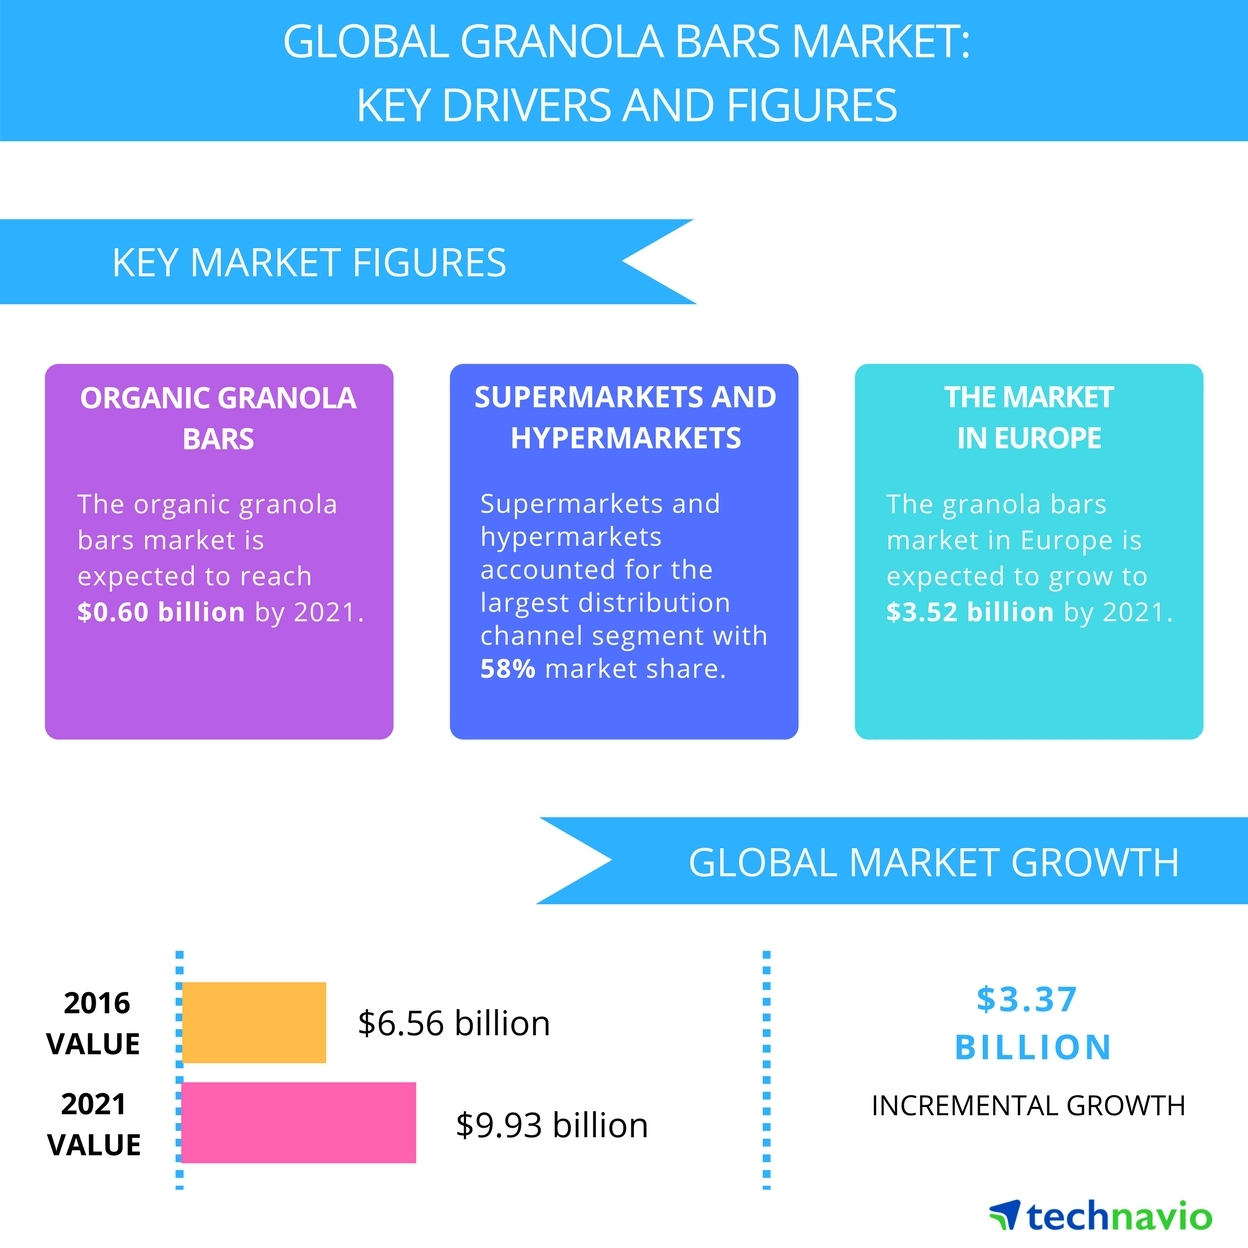 Technavio has published a new report on the global granola bars market from 2017-2021. (Graphic: Business Wire)